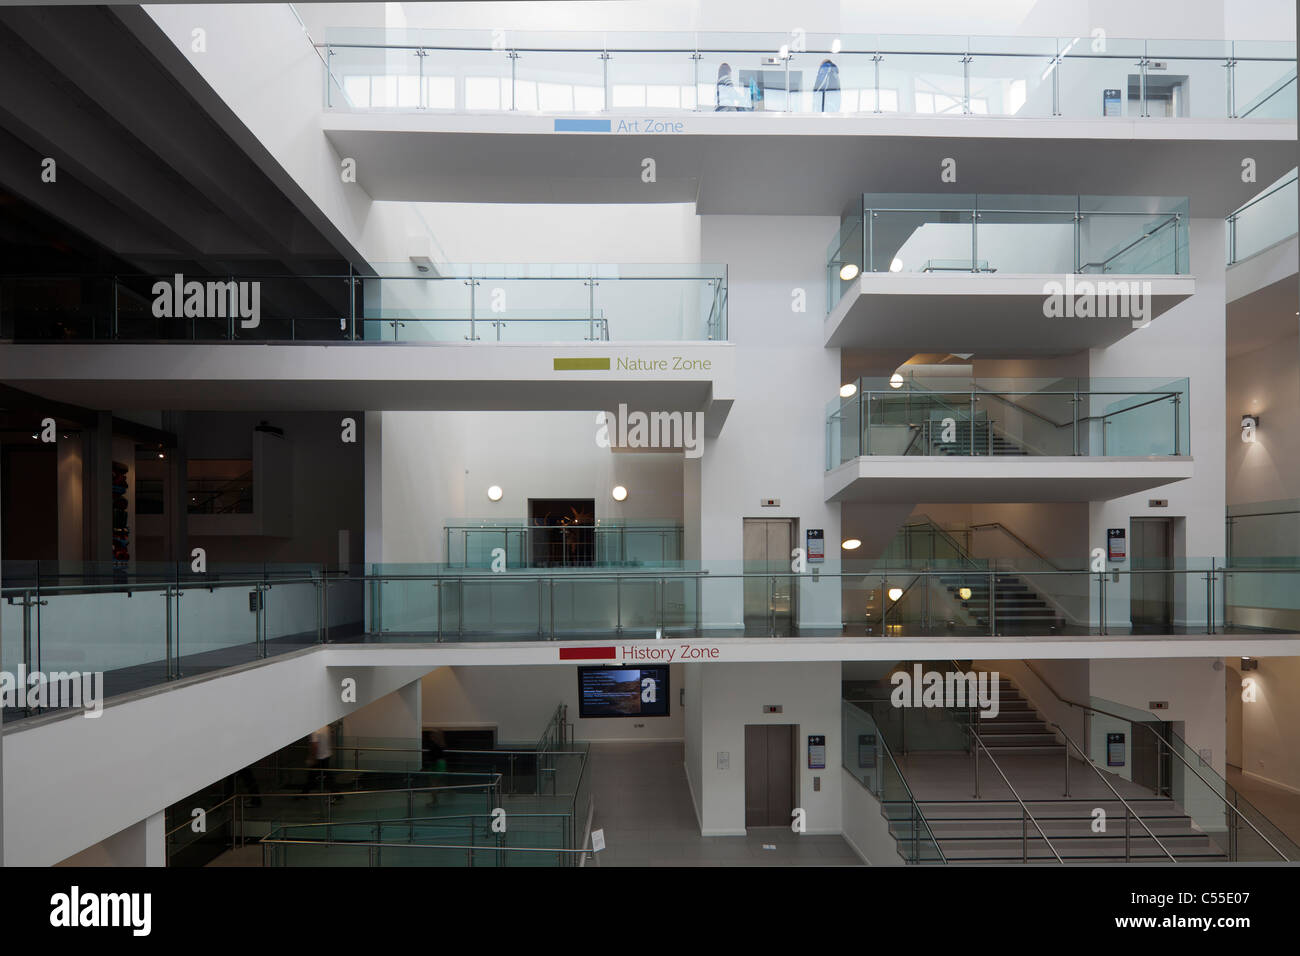 redesigned lobby of the Ulster Museum, Belfast, Northern Ireland, UK - Stock Image